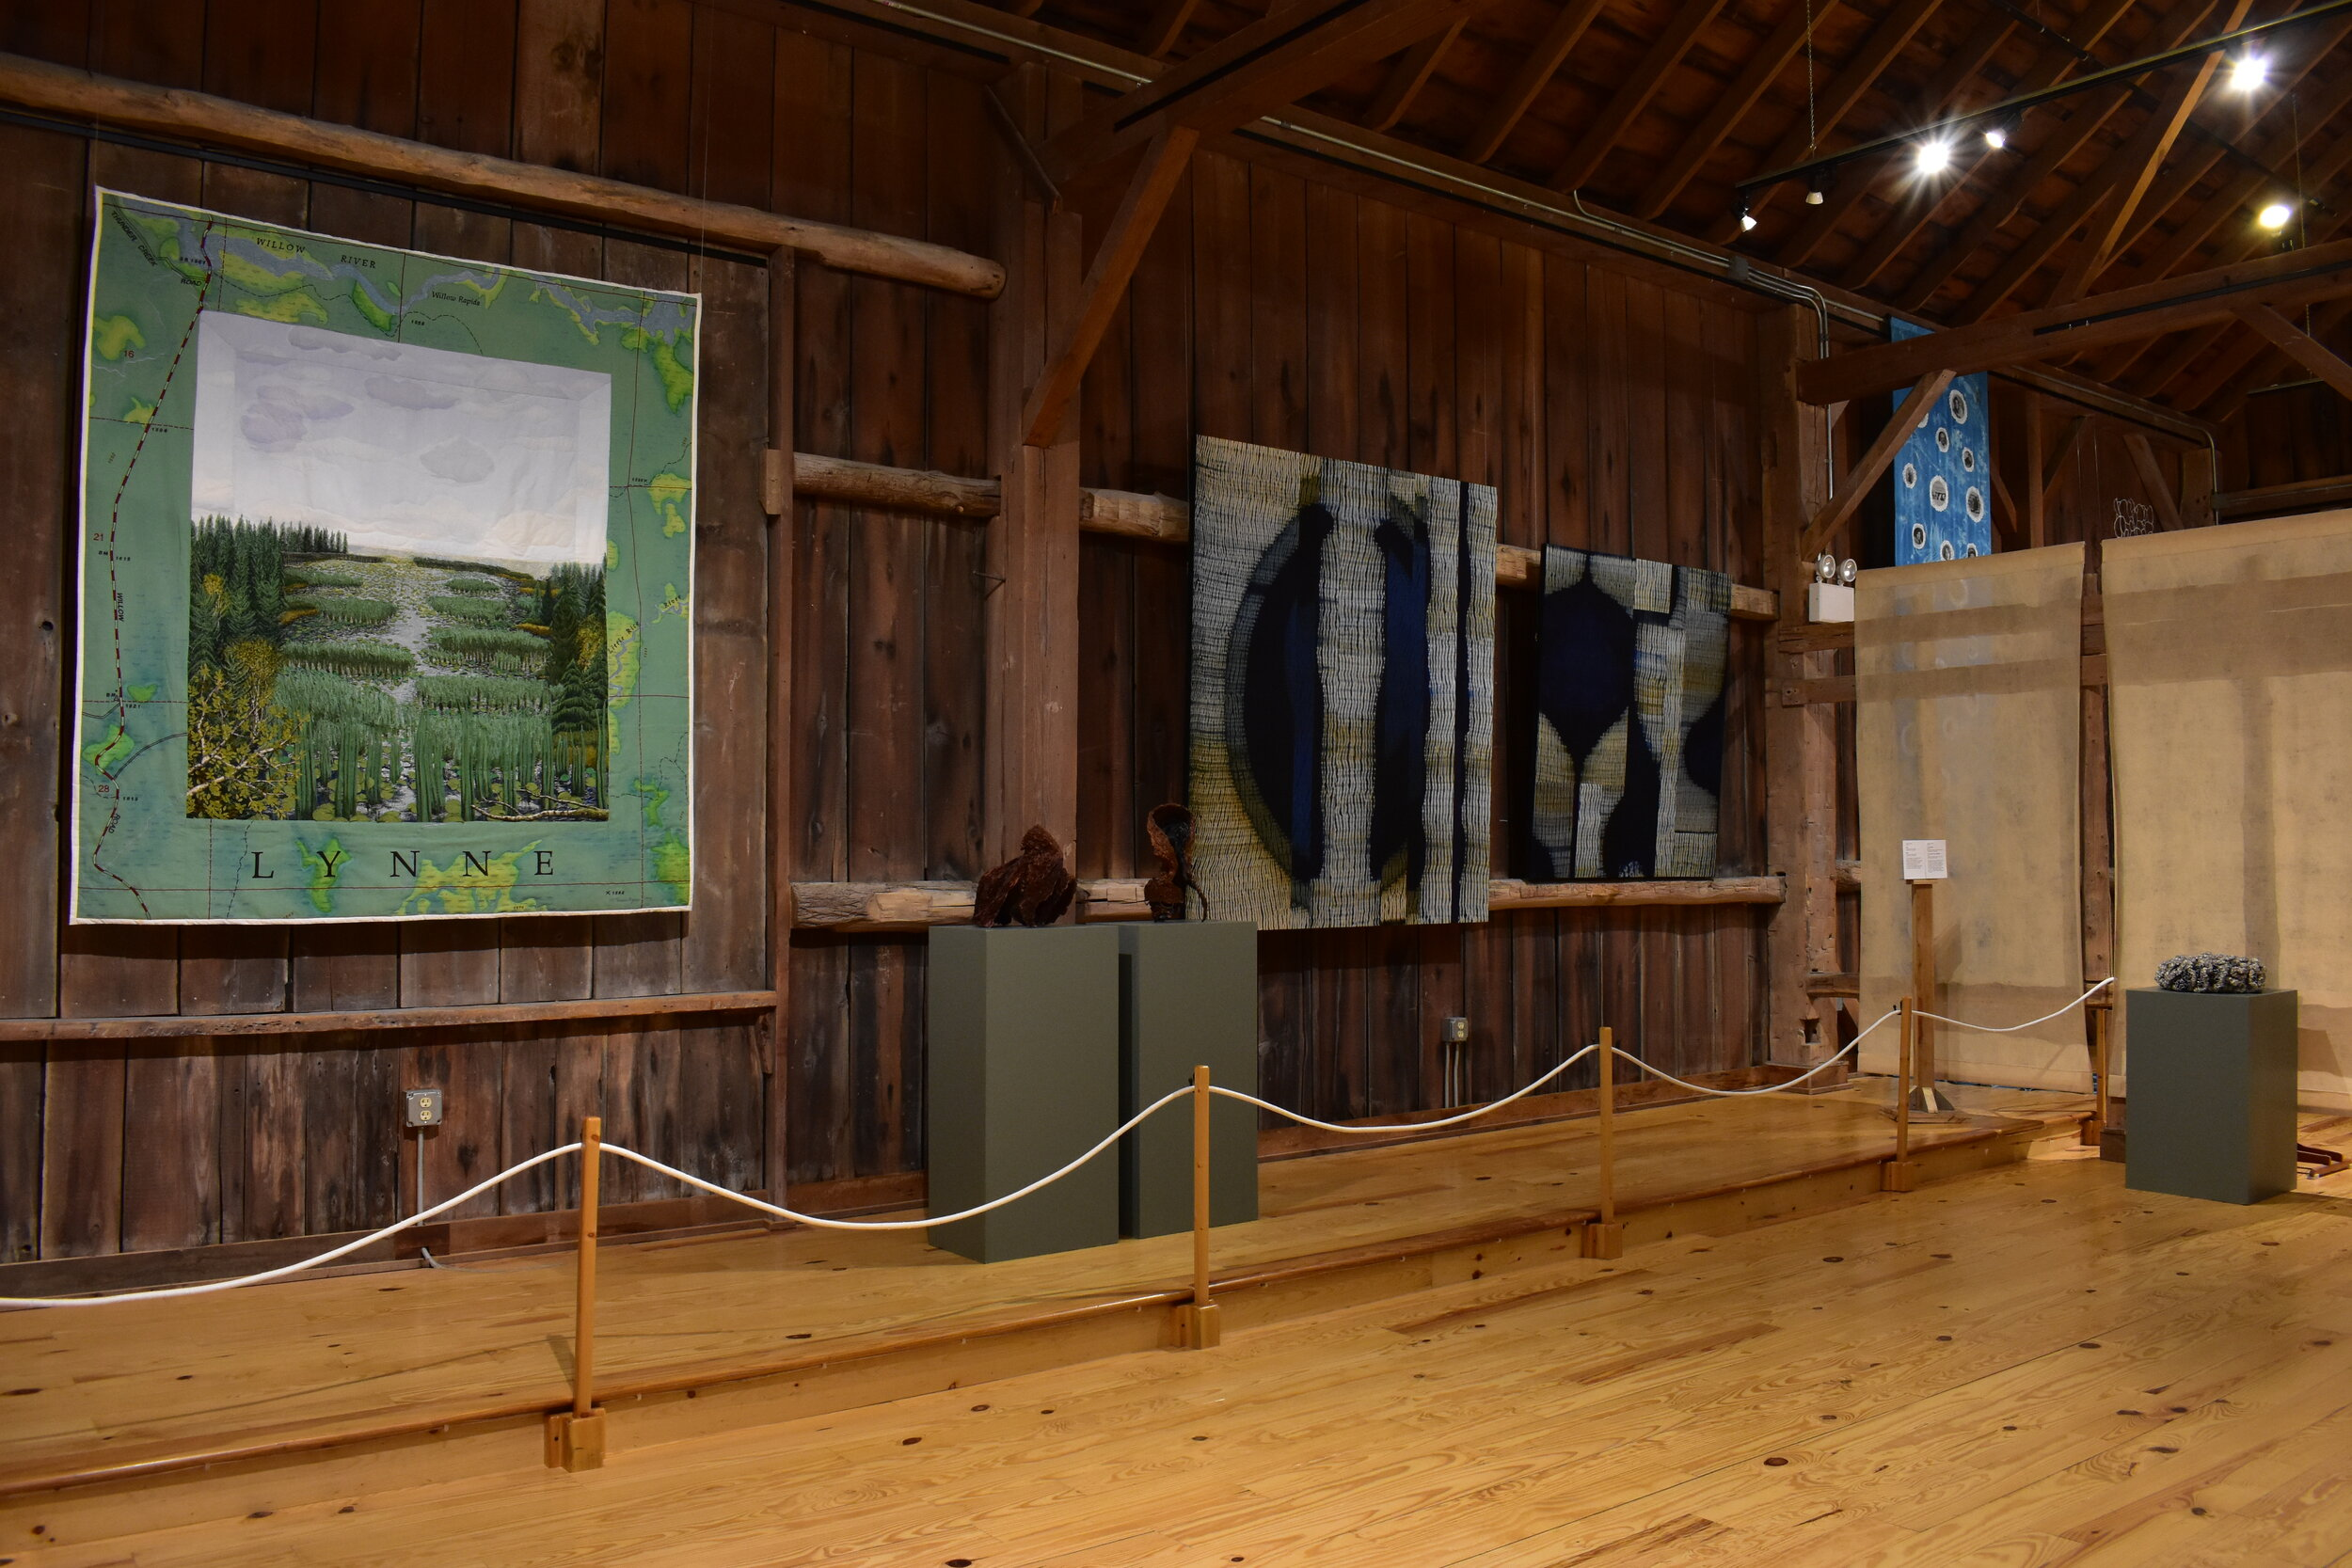 Installation view of  Water  with works by Terese Agnew (left), Frank Connet (middle and right), and Karyl Sisson (far right). Courtesy of the artists (Connet and Sisson) and Collection of John M. Walsh III (Agnew).